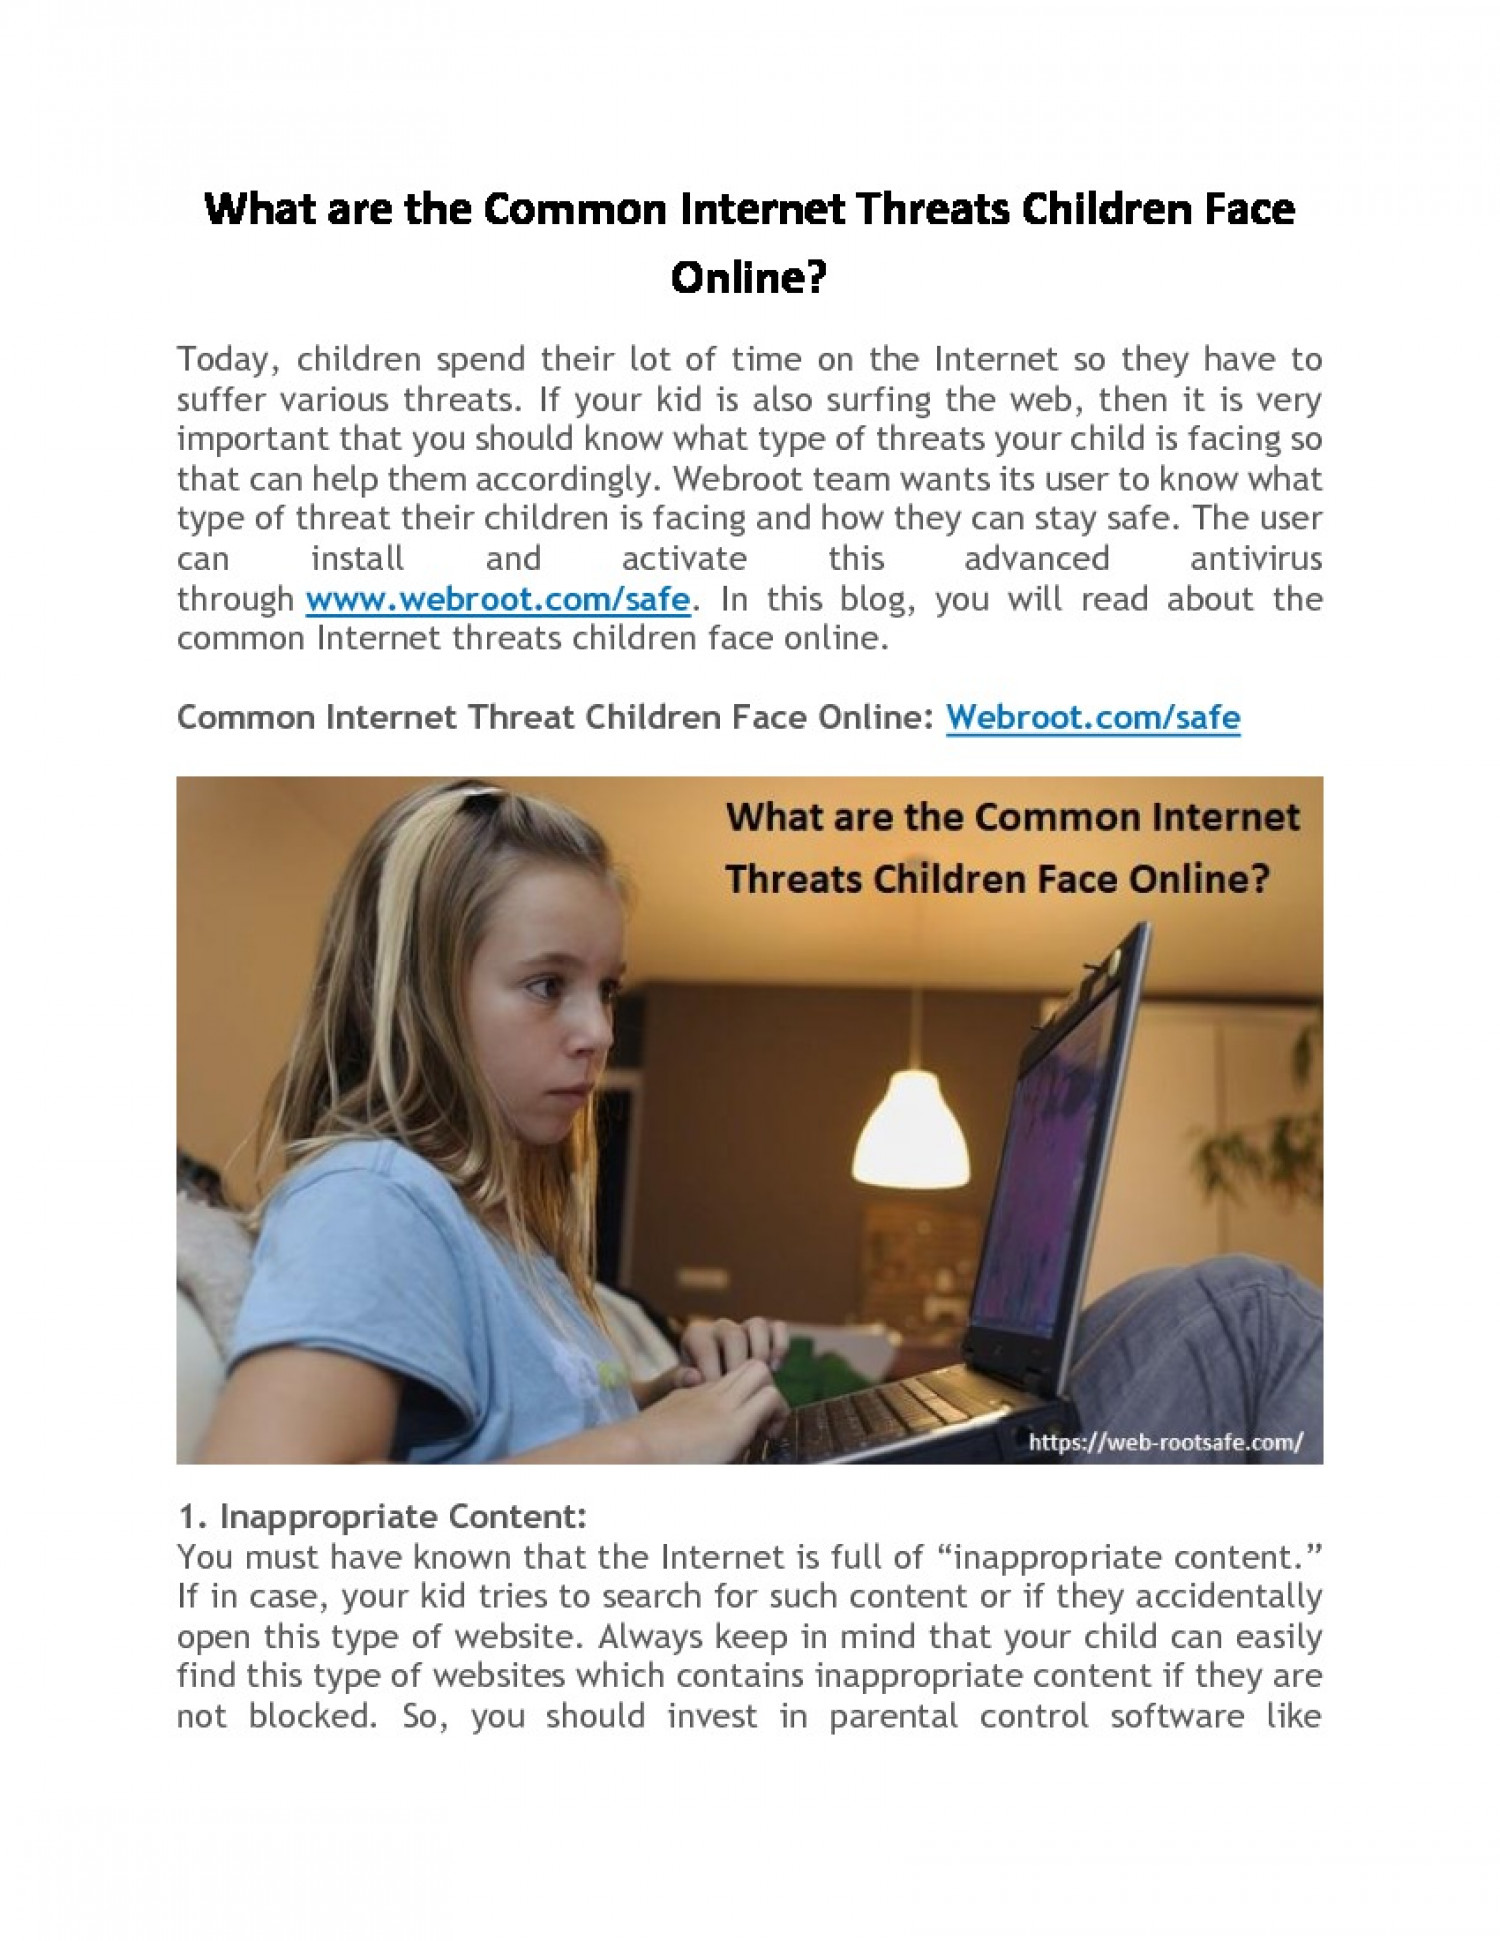 What are the Common Internet Threats Children Face Online? Infographic